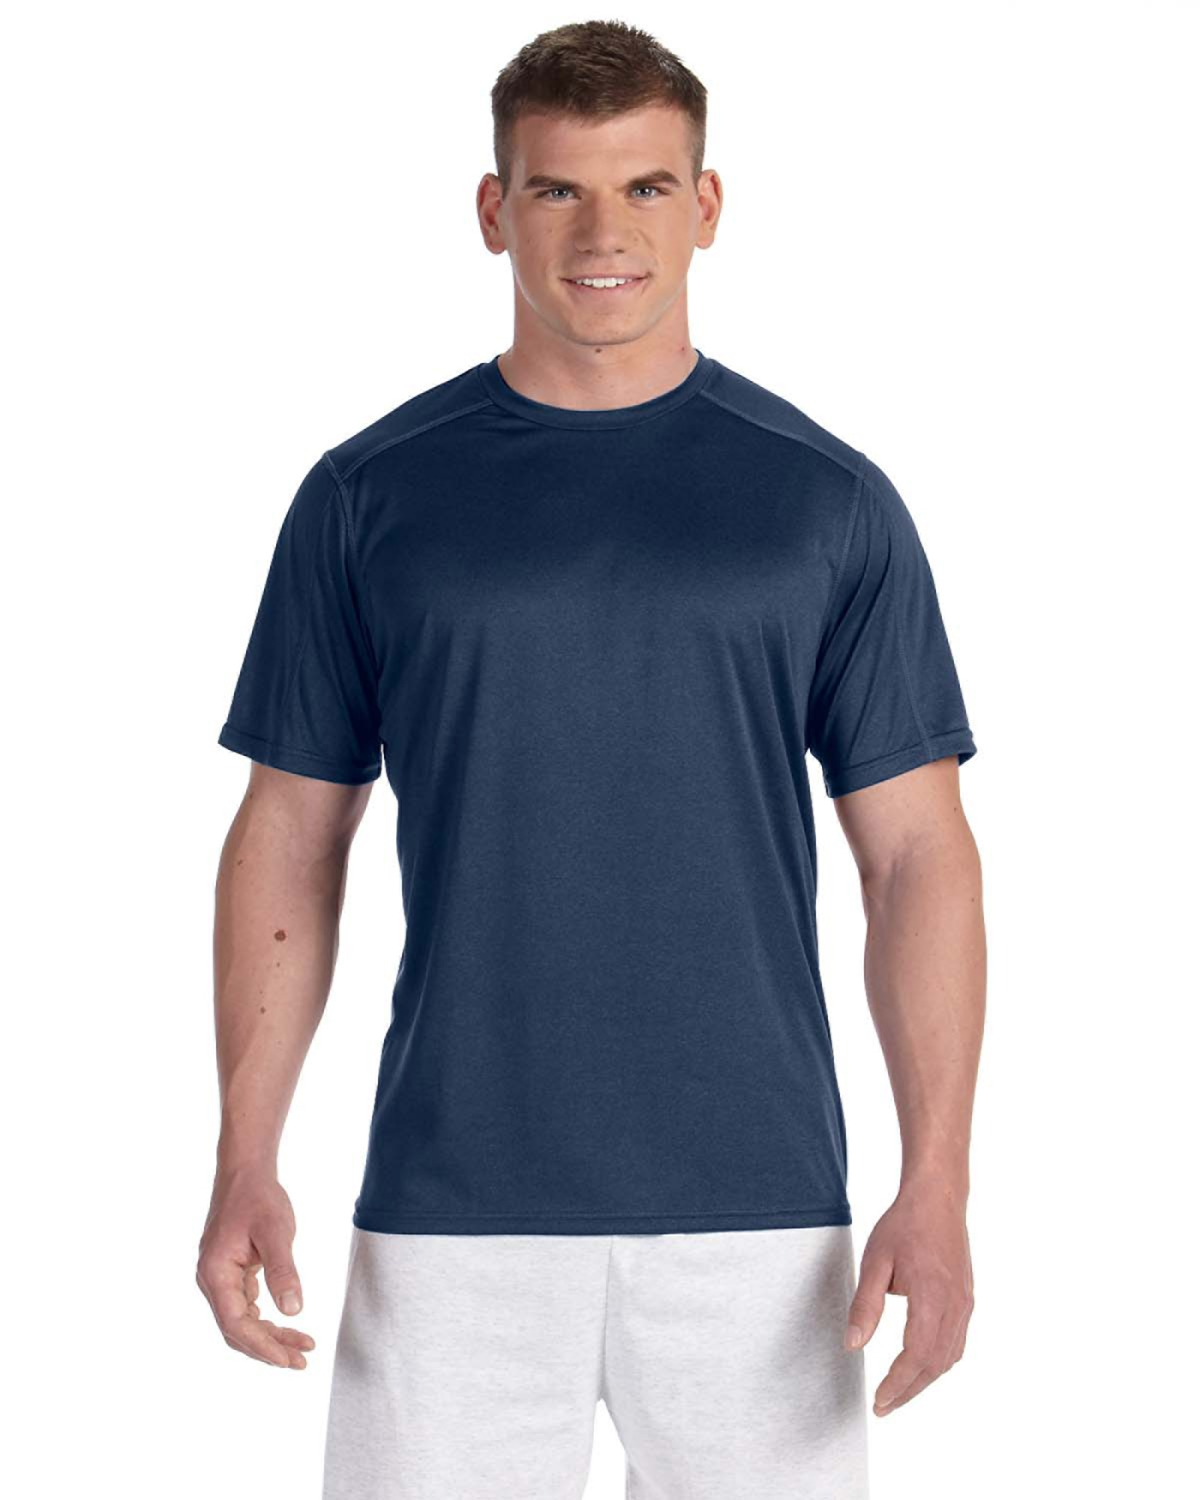 Champion CV20 - Vapor® 4 oz. T-Shirt